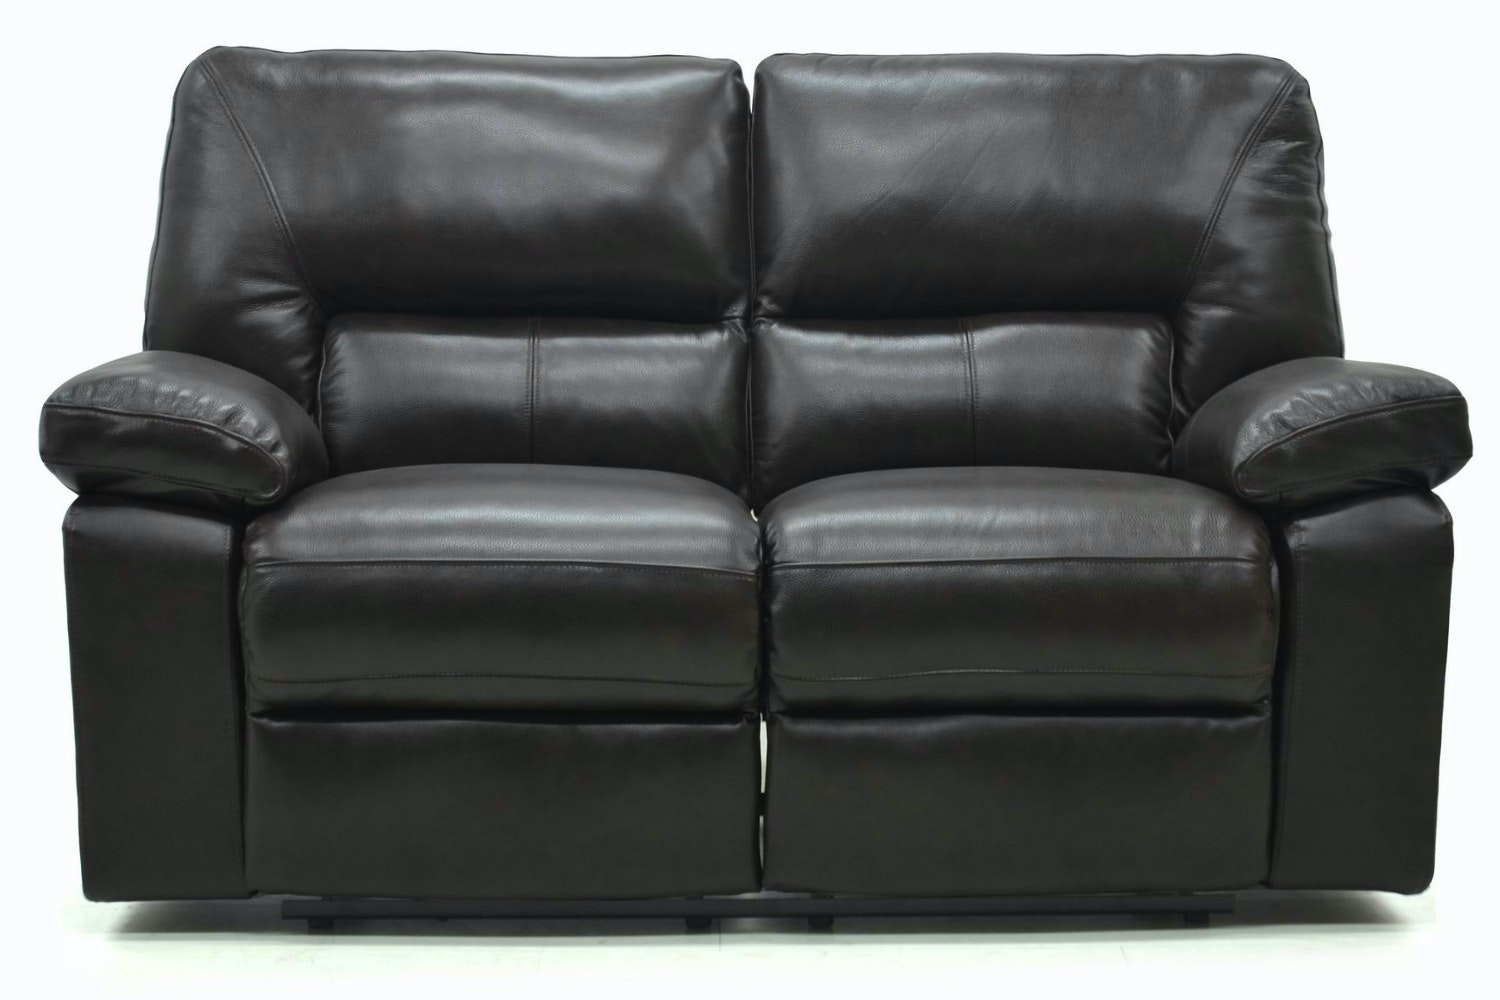 Cala 2 Seater Leather Recliner Sofa